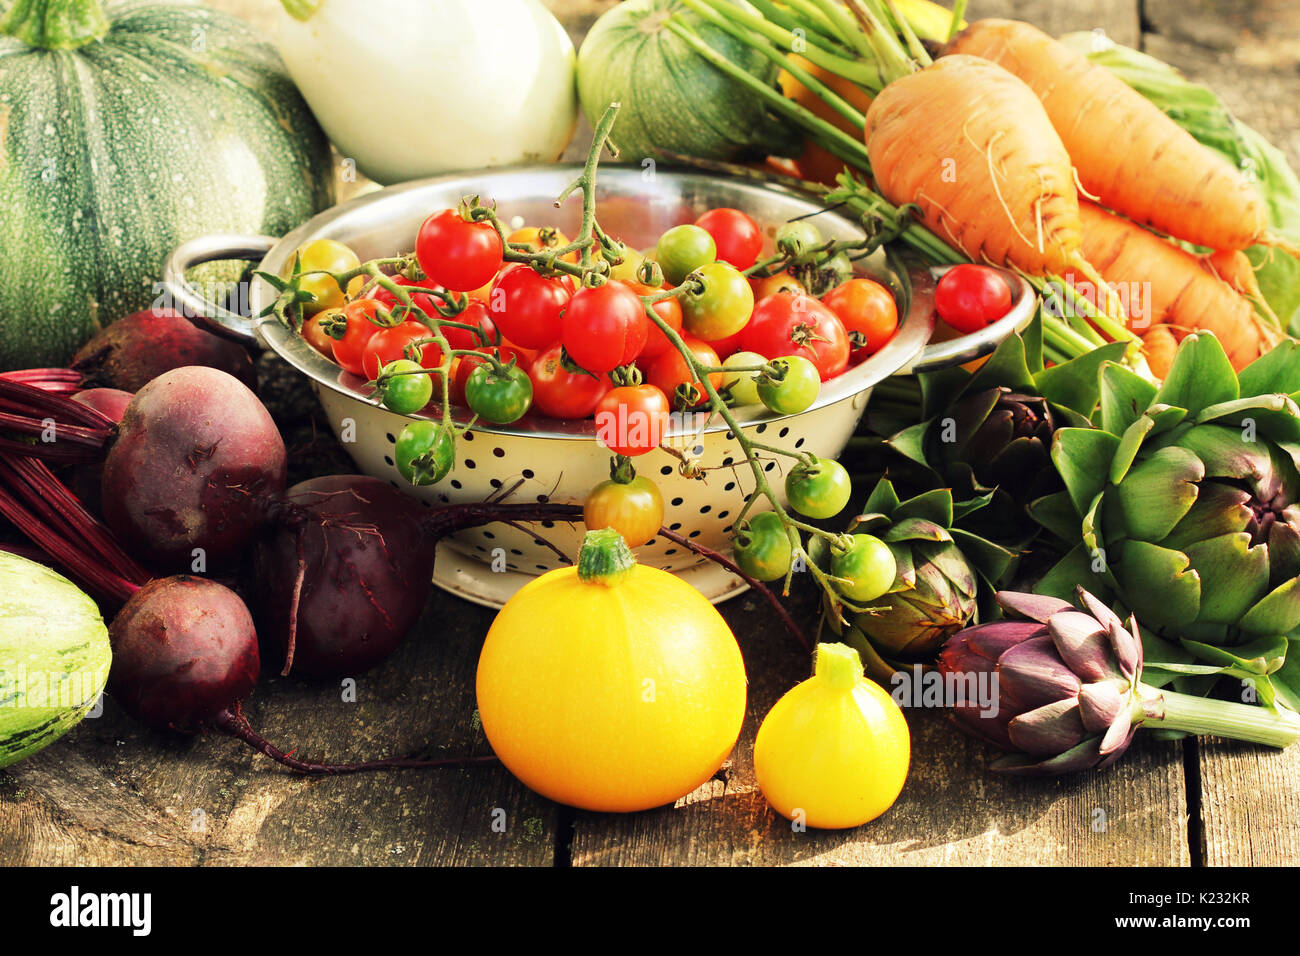 Fresh raw vegetable ingredients for healthy cooking or salad making on rustic table , copy space. Diet or vegetarian - Stock Image